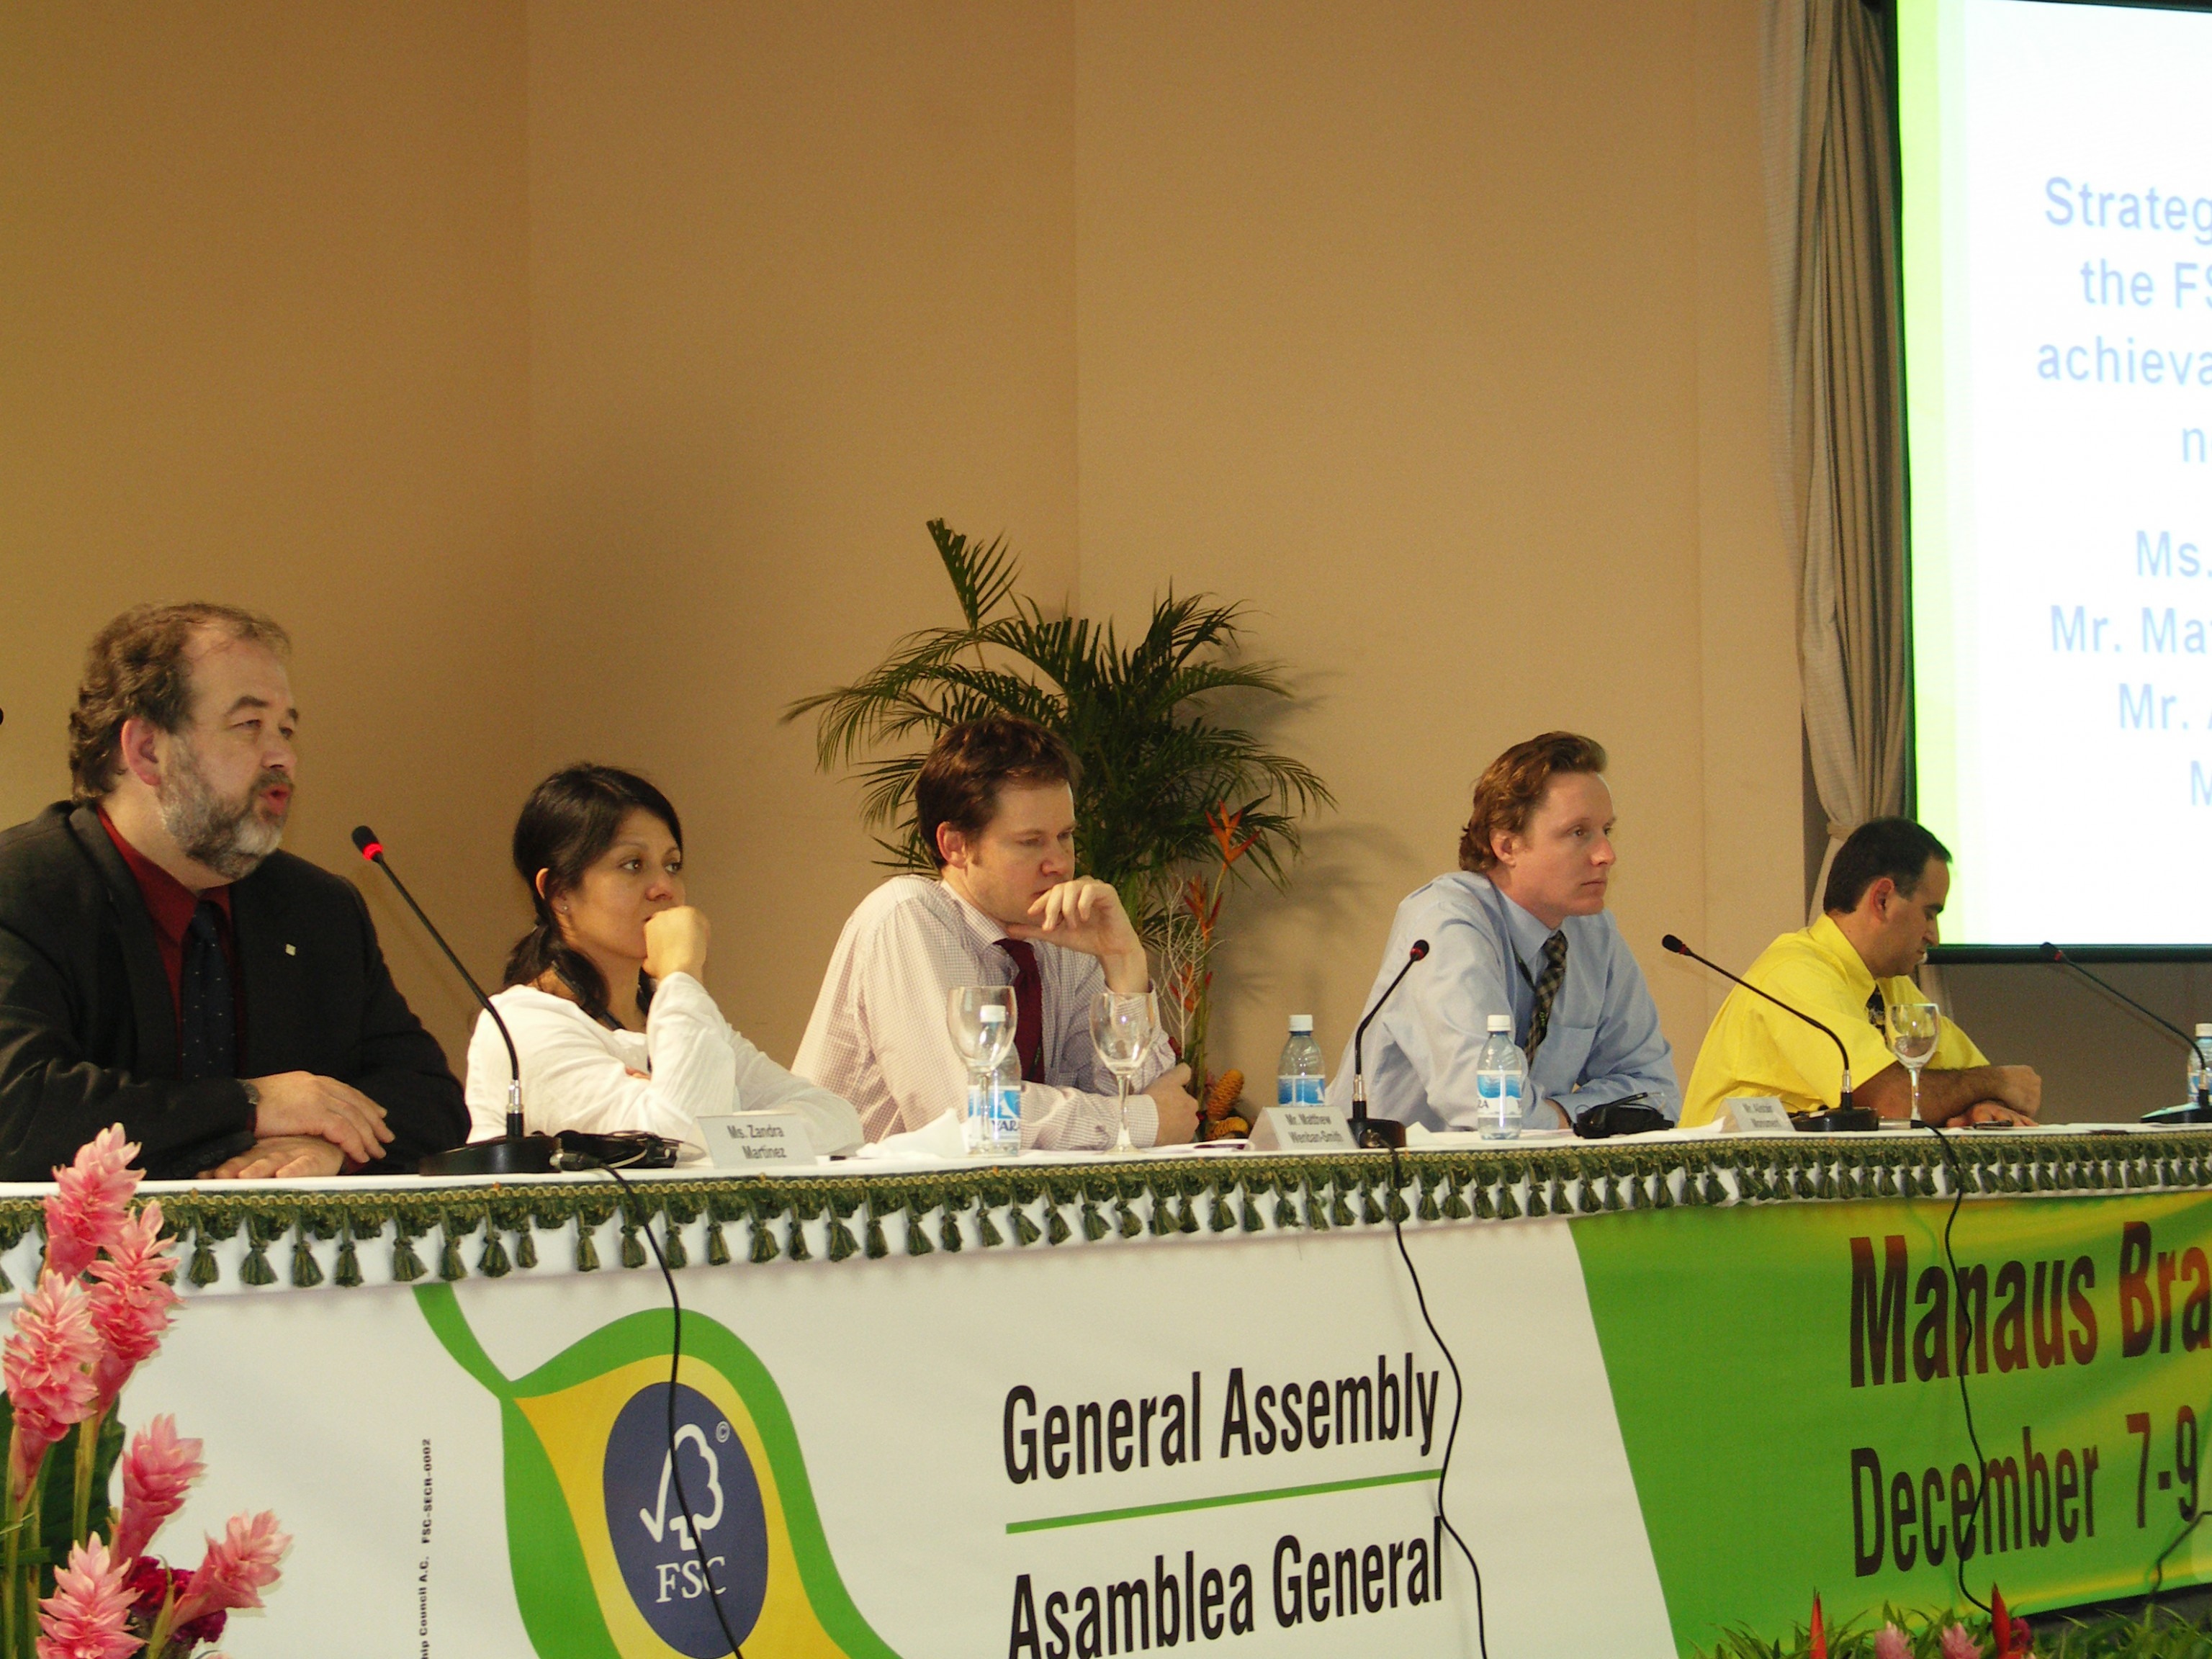 General Assembly 2005